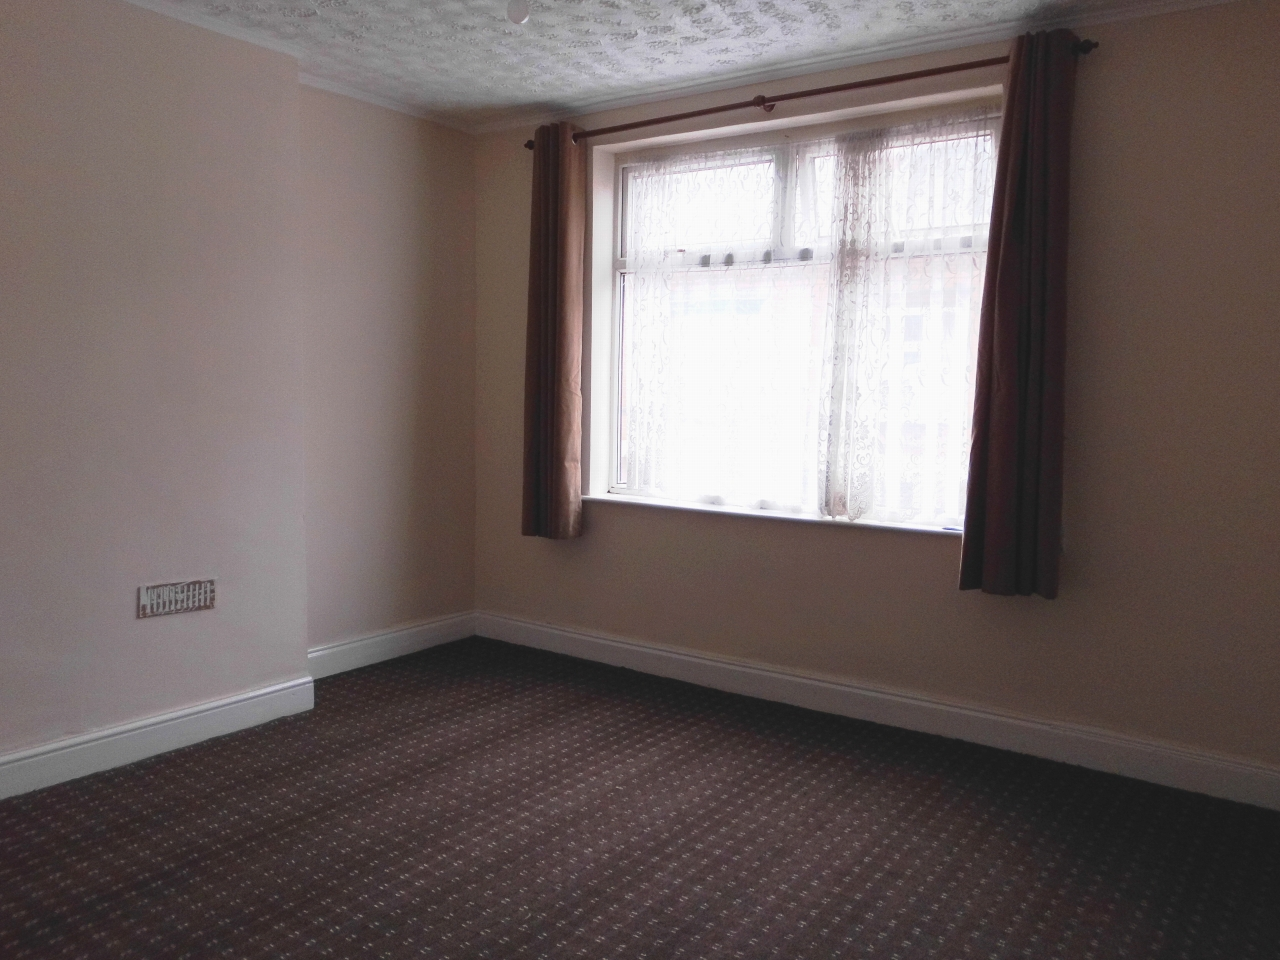 2 bedroom mid terraced house For Sale in Leicester - Photograph 5.